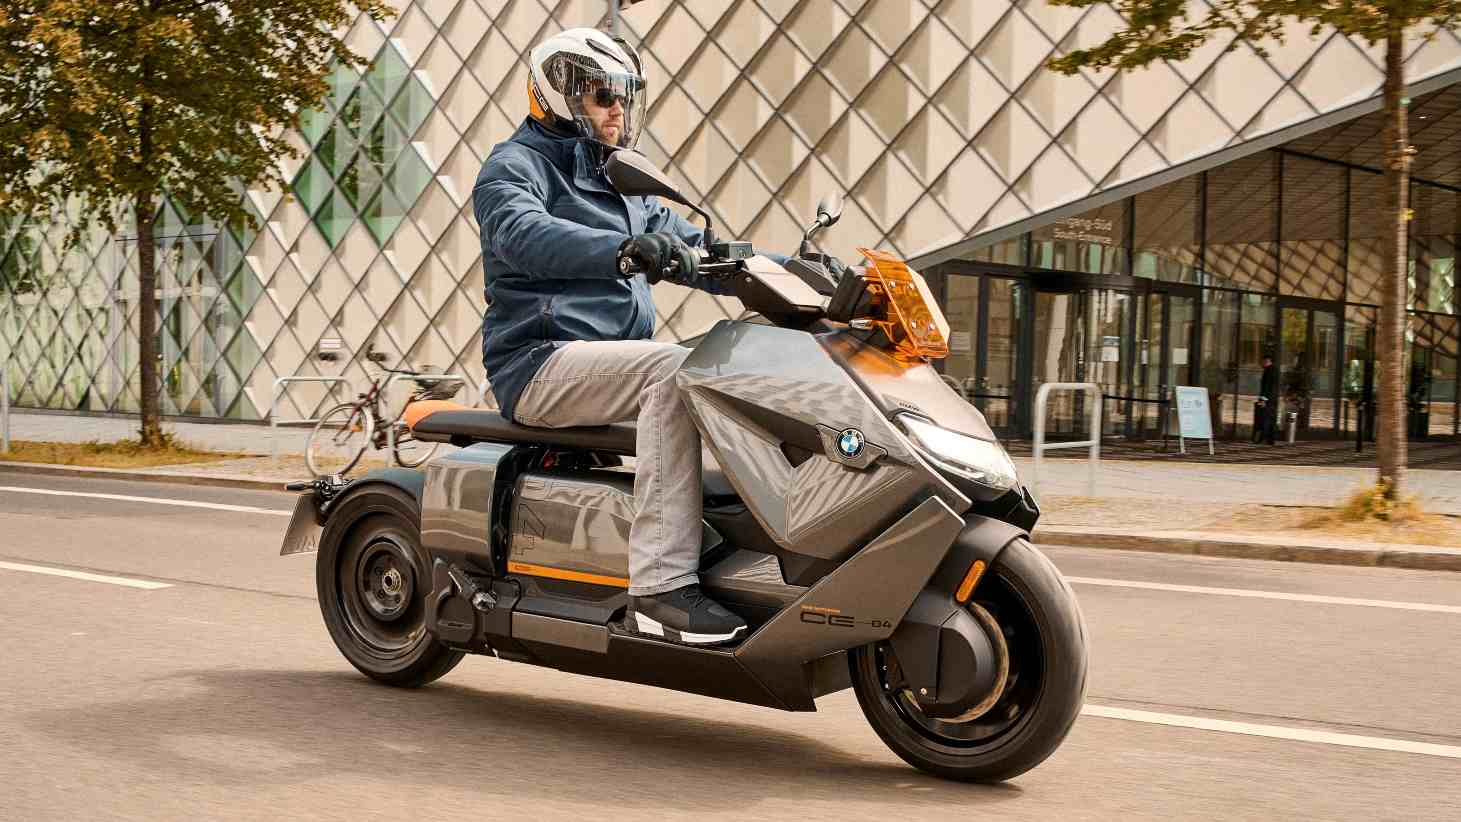 BMW CE 04 electric scooter debuts in production mode at 130 kilometers - Technology News, Firstpost